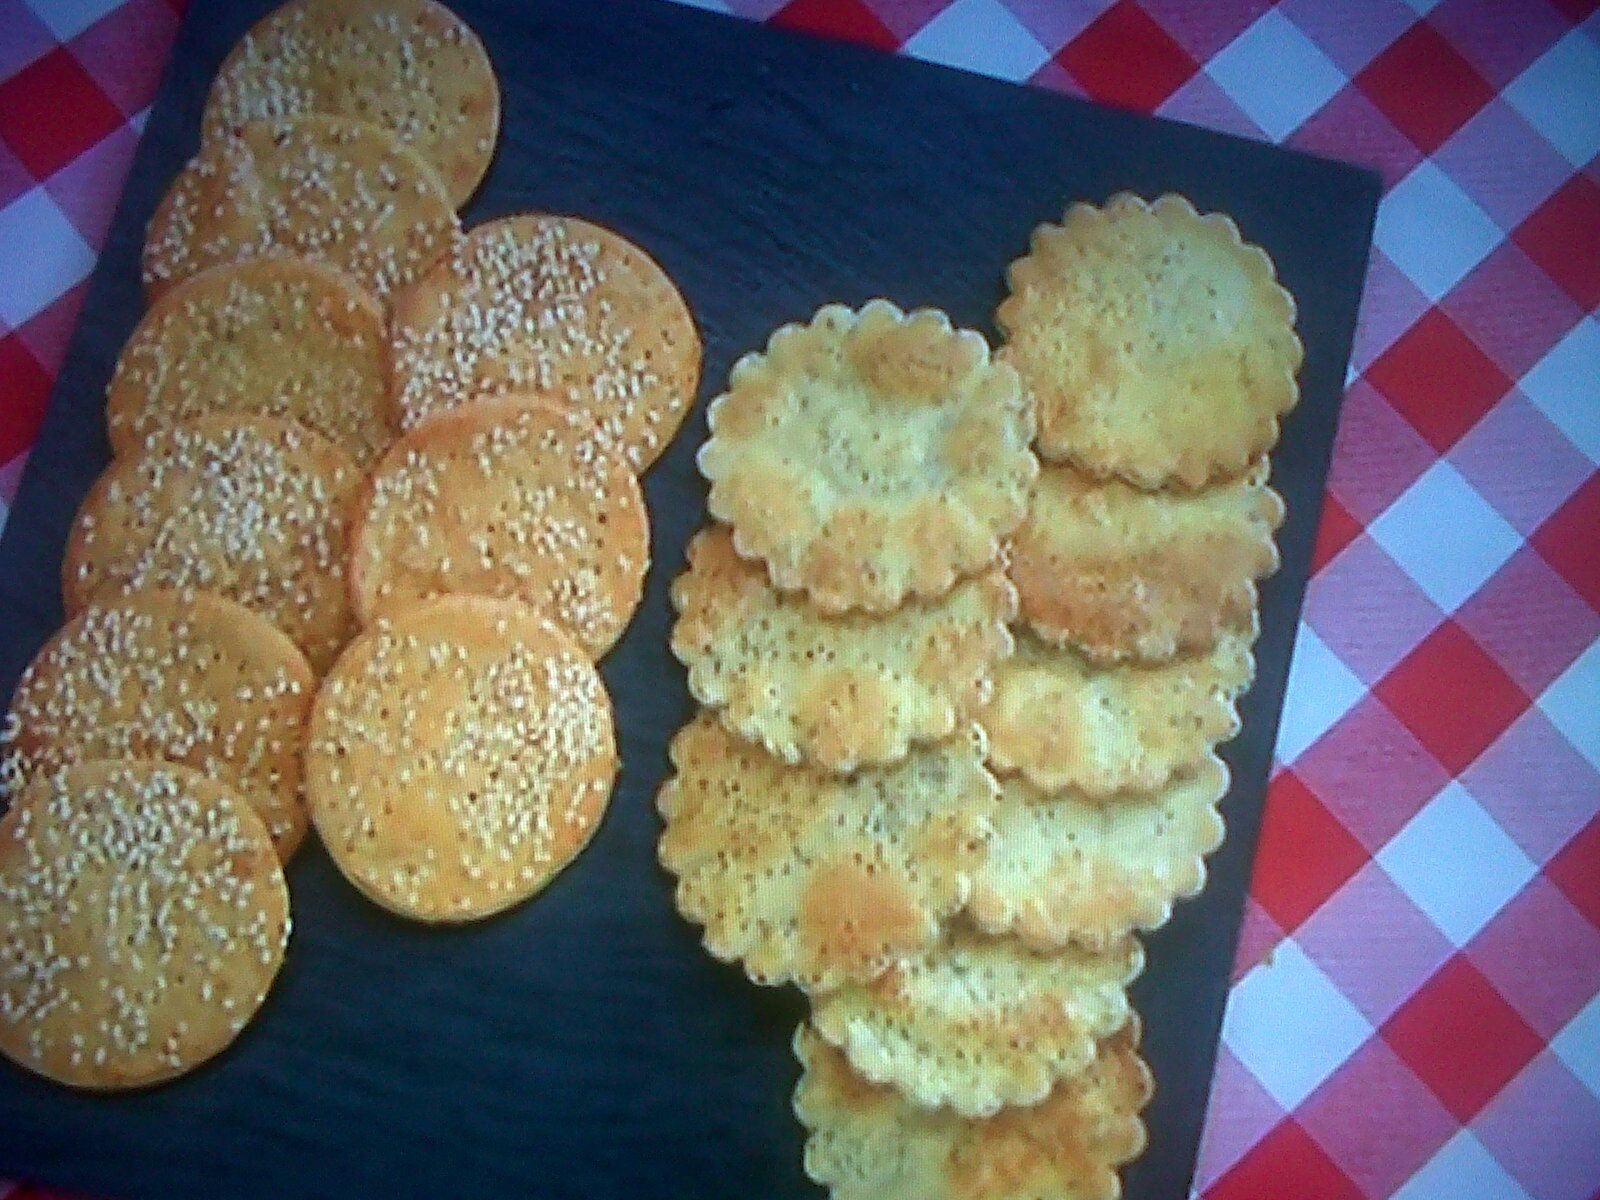 Paul S Savoury Biscuits Featured On The Great British Bake Off Masterclass British Bake Off Recipes British Baking Show Recipes British Cooking